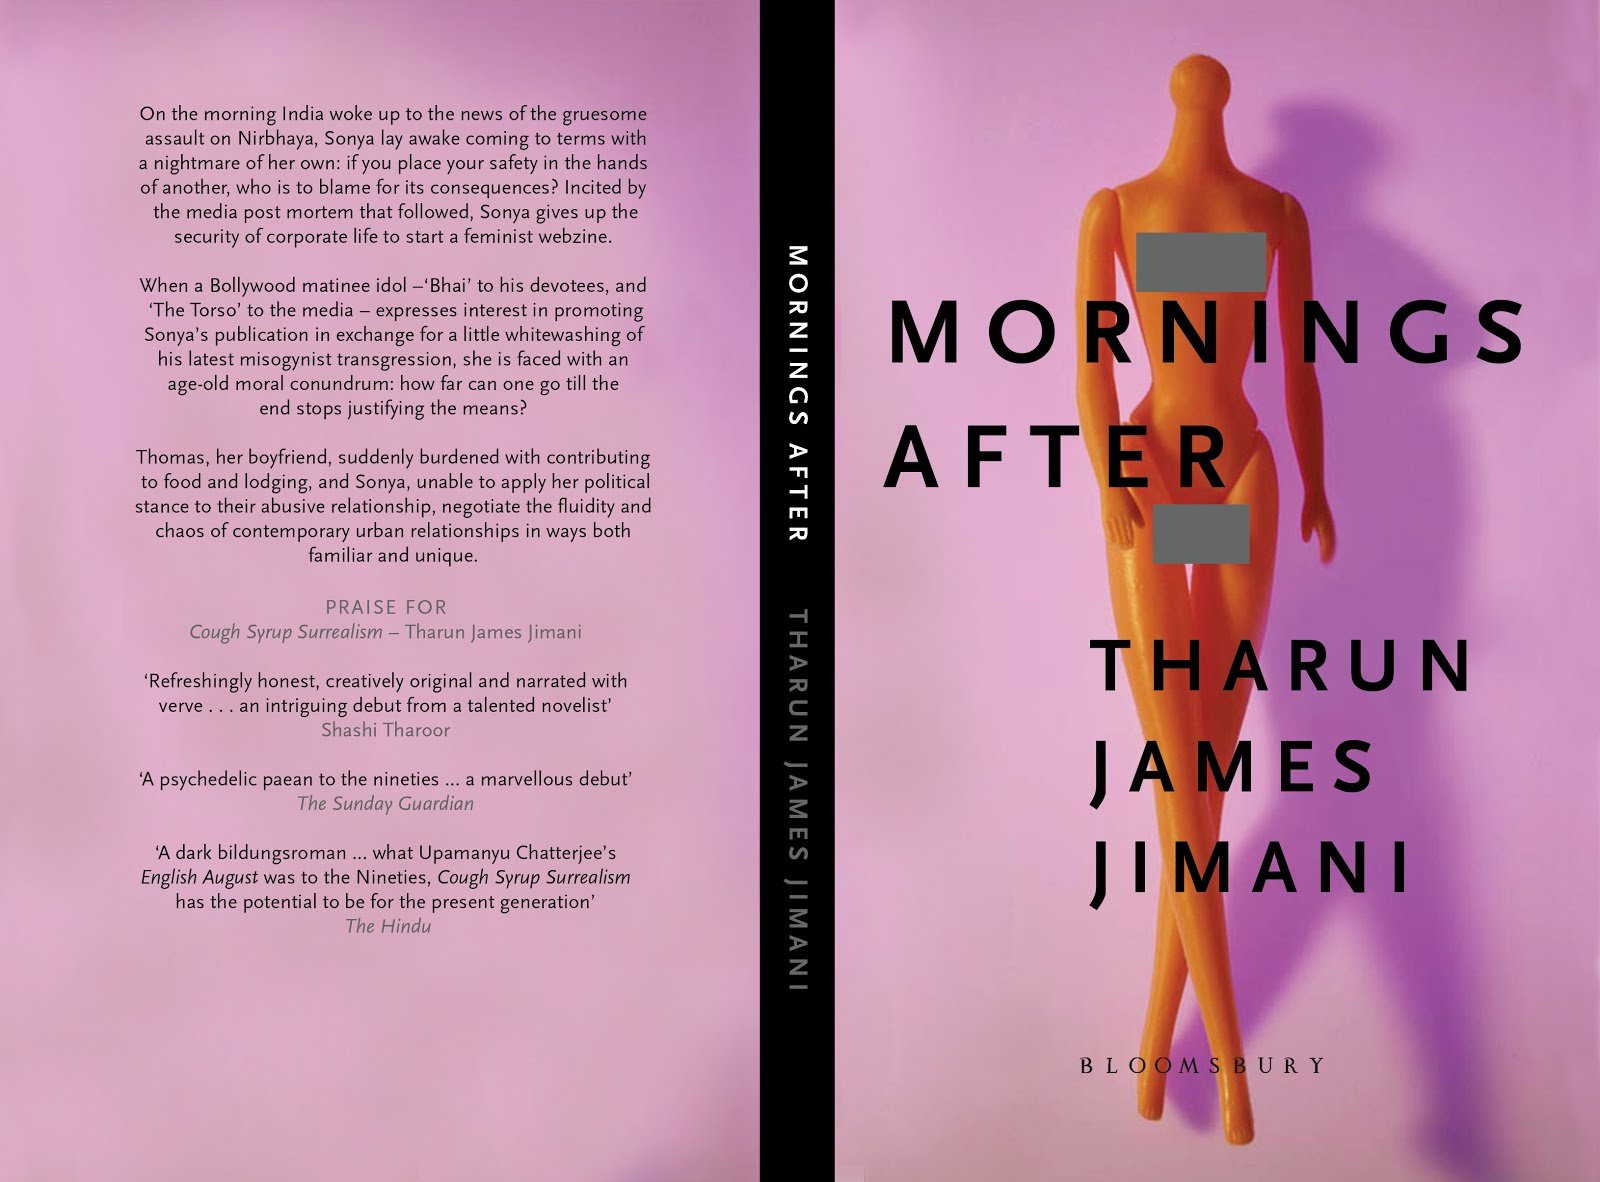 MORNINGS AFTER (2016), Bloomsbury India